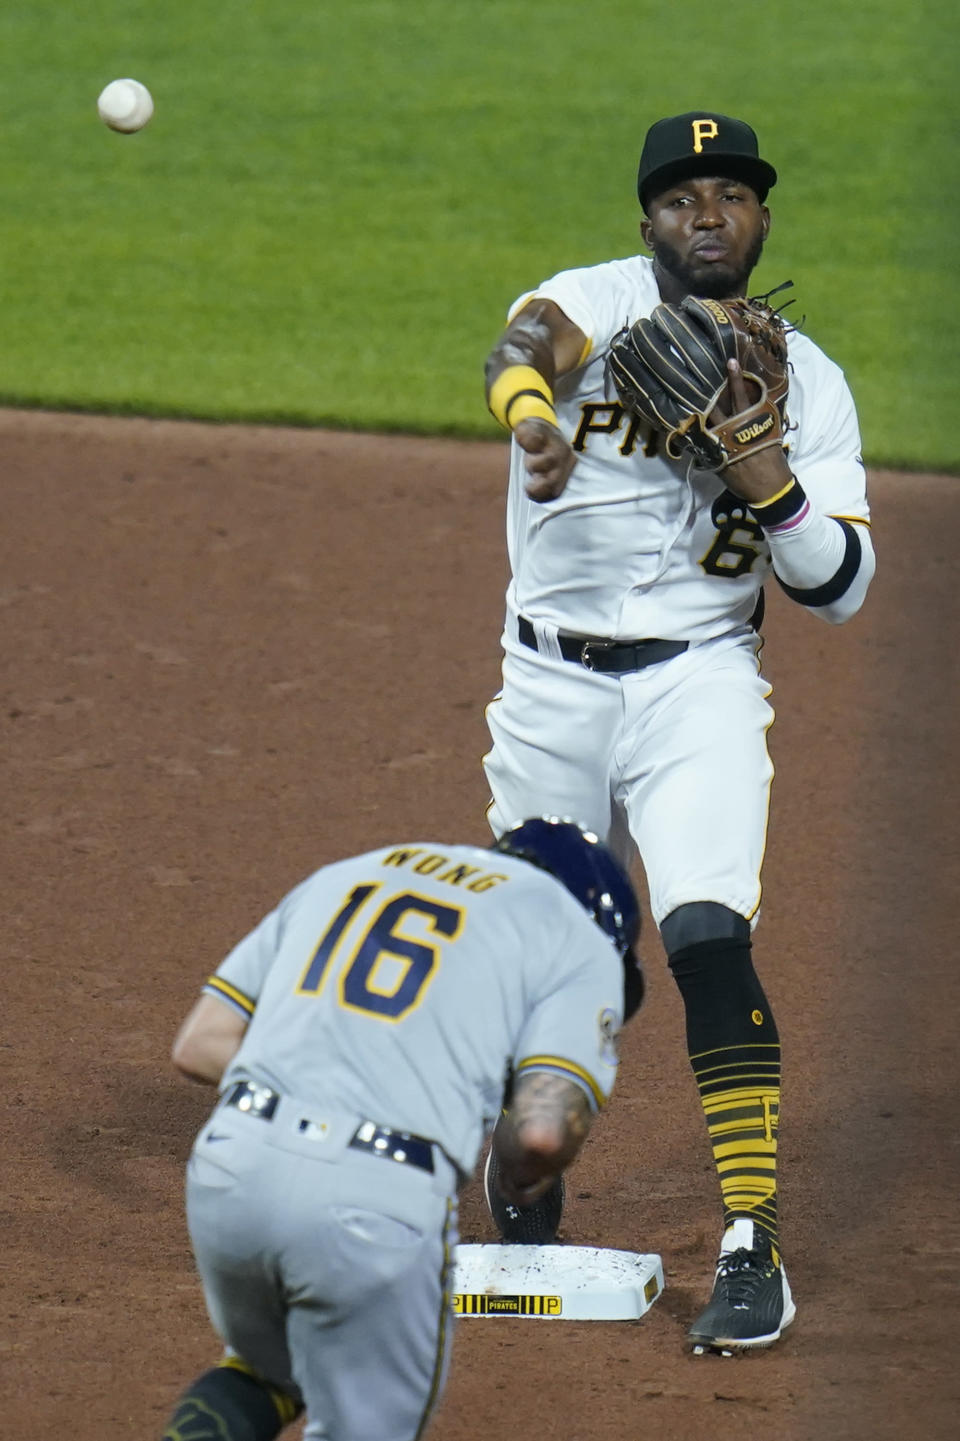 Pittsburgh Pirates second baseman Rodolfo Castro relays the ball to first after Milwaukee Brewers' Kolten Wong was forced out on the front end of a double play hit into by Willy Adames during the eighth inning of a baseball game Tuesday, July 27, 2021, in Pittsburgh. (AP Photo/Keith Srakocic)